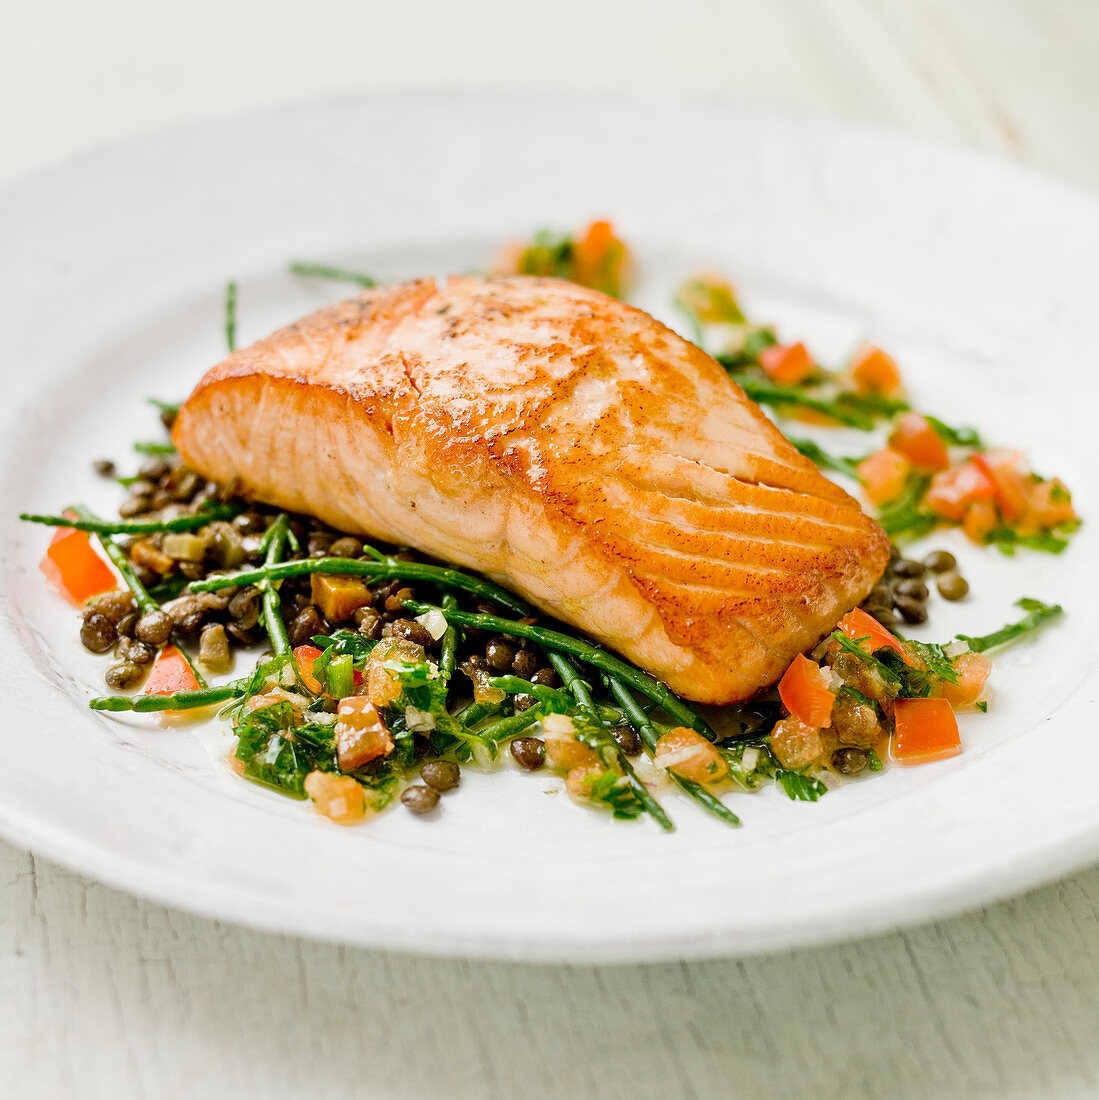 Salmon fillet on a bed of samphire, green lentles and tomatoes with a green herb vinegarette